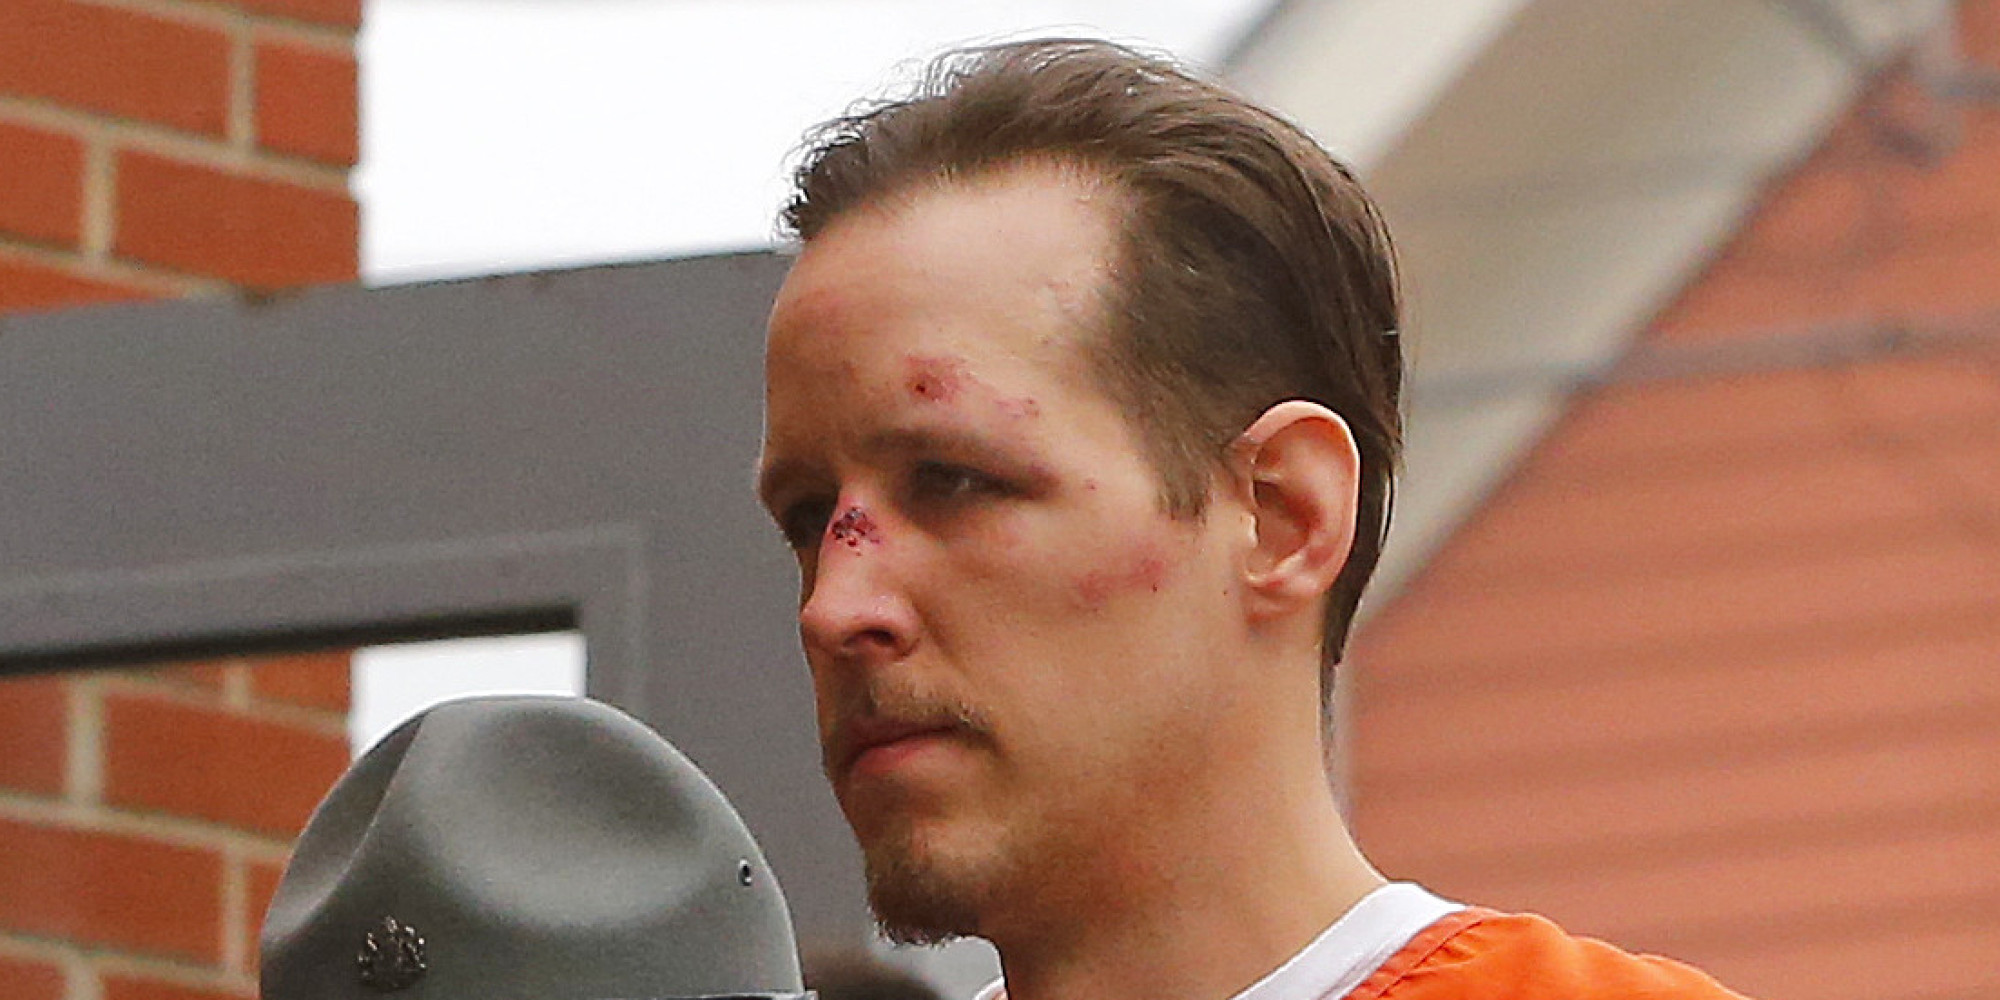 eric frein jury pool tainted by da 39 s 39 graphic 39 re election campaign lawyer huffpost. Black Bedroom Furniture Sets. Home Design Ideas